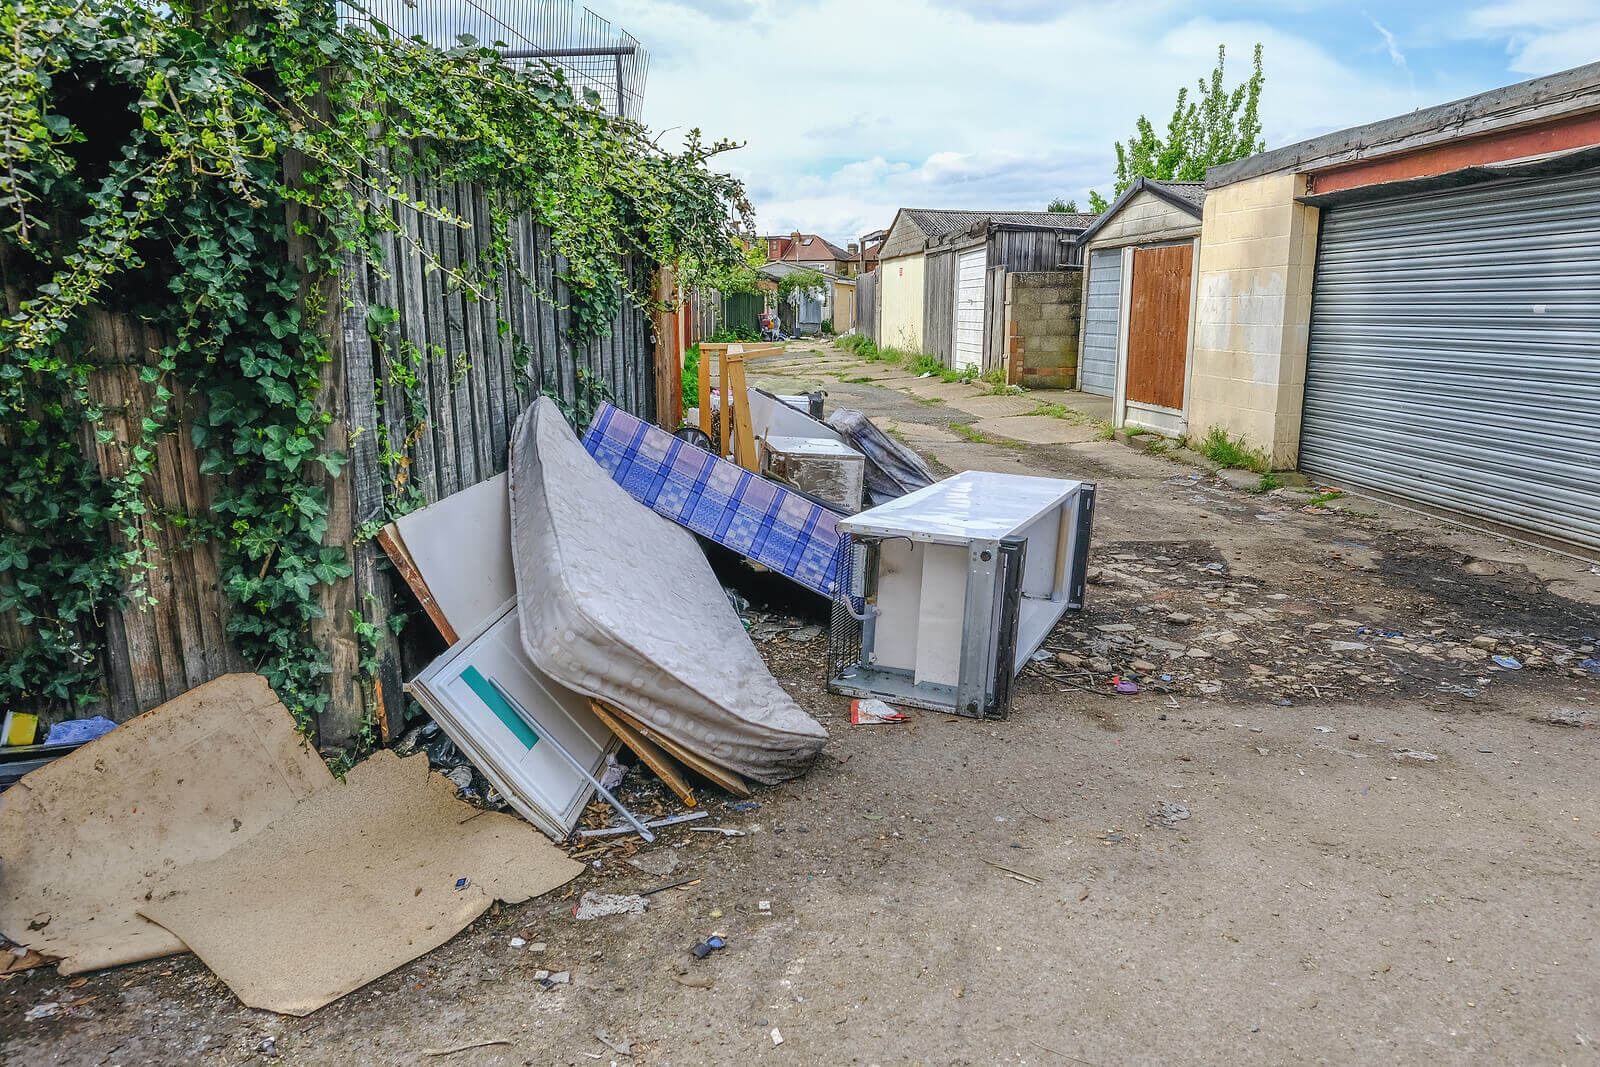 Fly-tipped waste in an urban alleyway next to garages